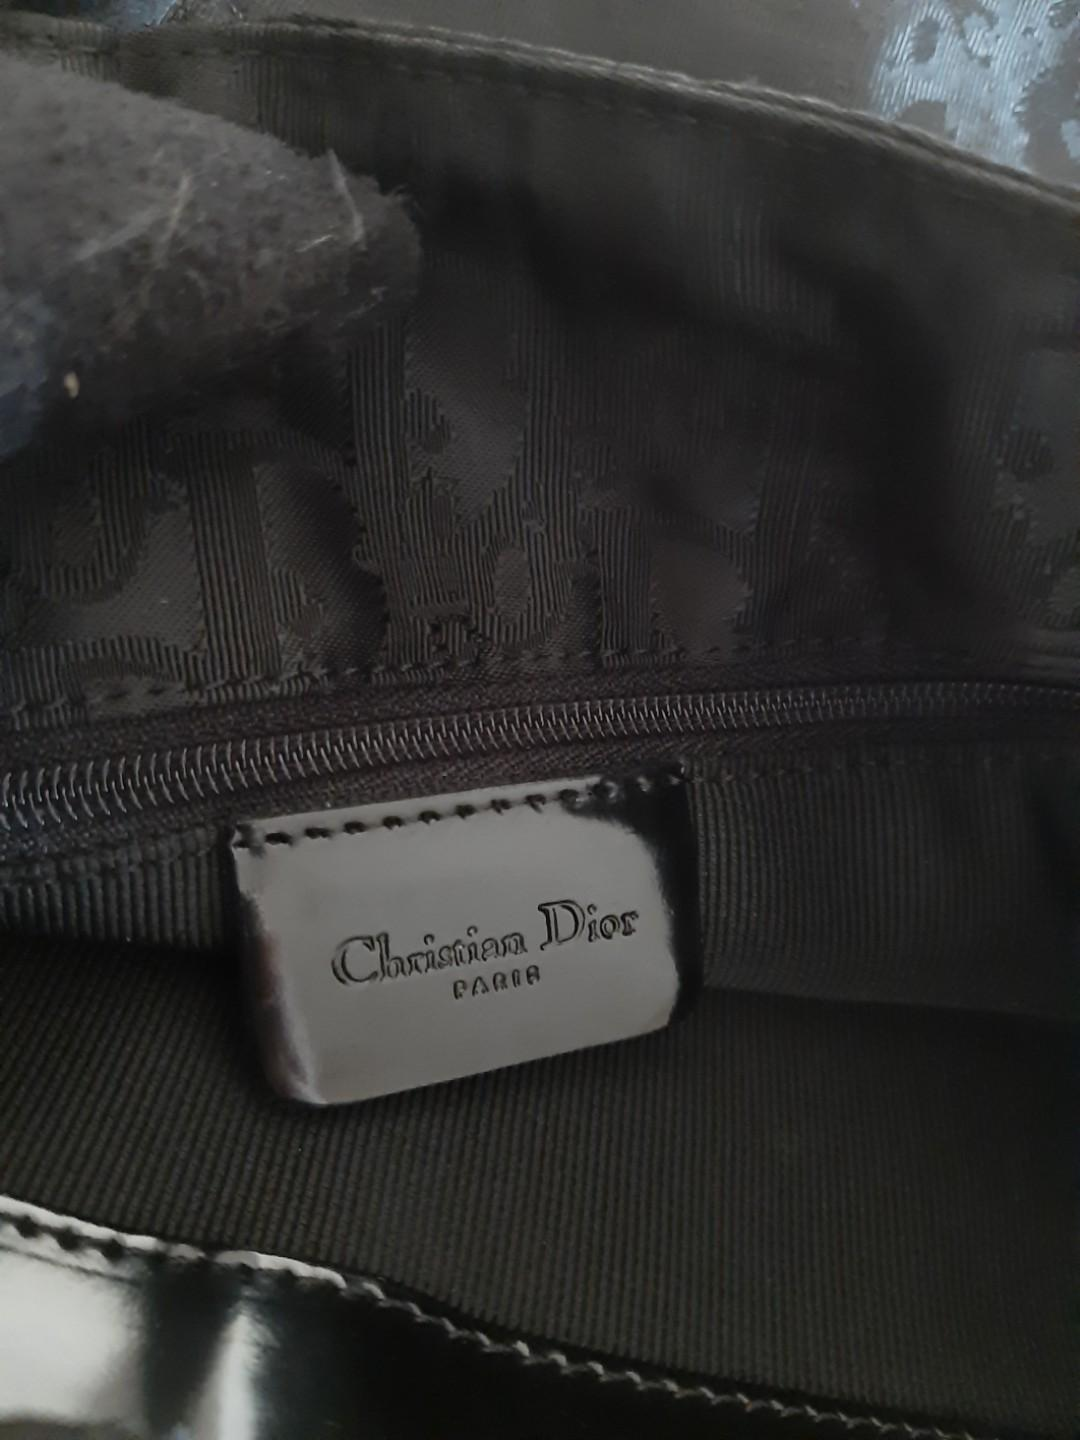 AUTHENTIC DIOR , LADY DIOR QUILTED BLACK NYLON SHOULDER BAG - MONOGRAM LOGO CANVAS DESIGN - CLEAN INTERIOR & POCKETS- HANDLE ABIT SEASONED , WILL GIVE TWILLY SCARF - (LARGE LADY DIOR BAGS NOW RETAIL OVER RM 20,000+)